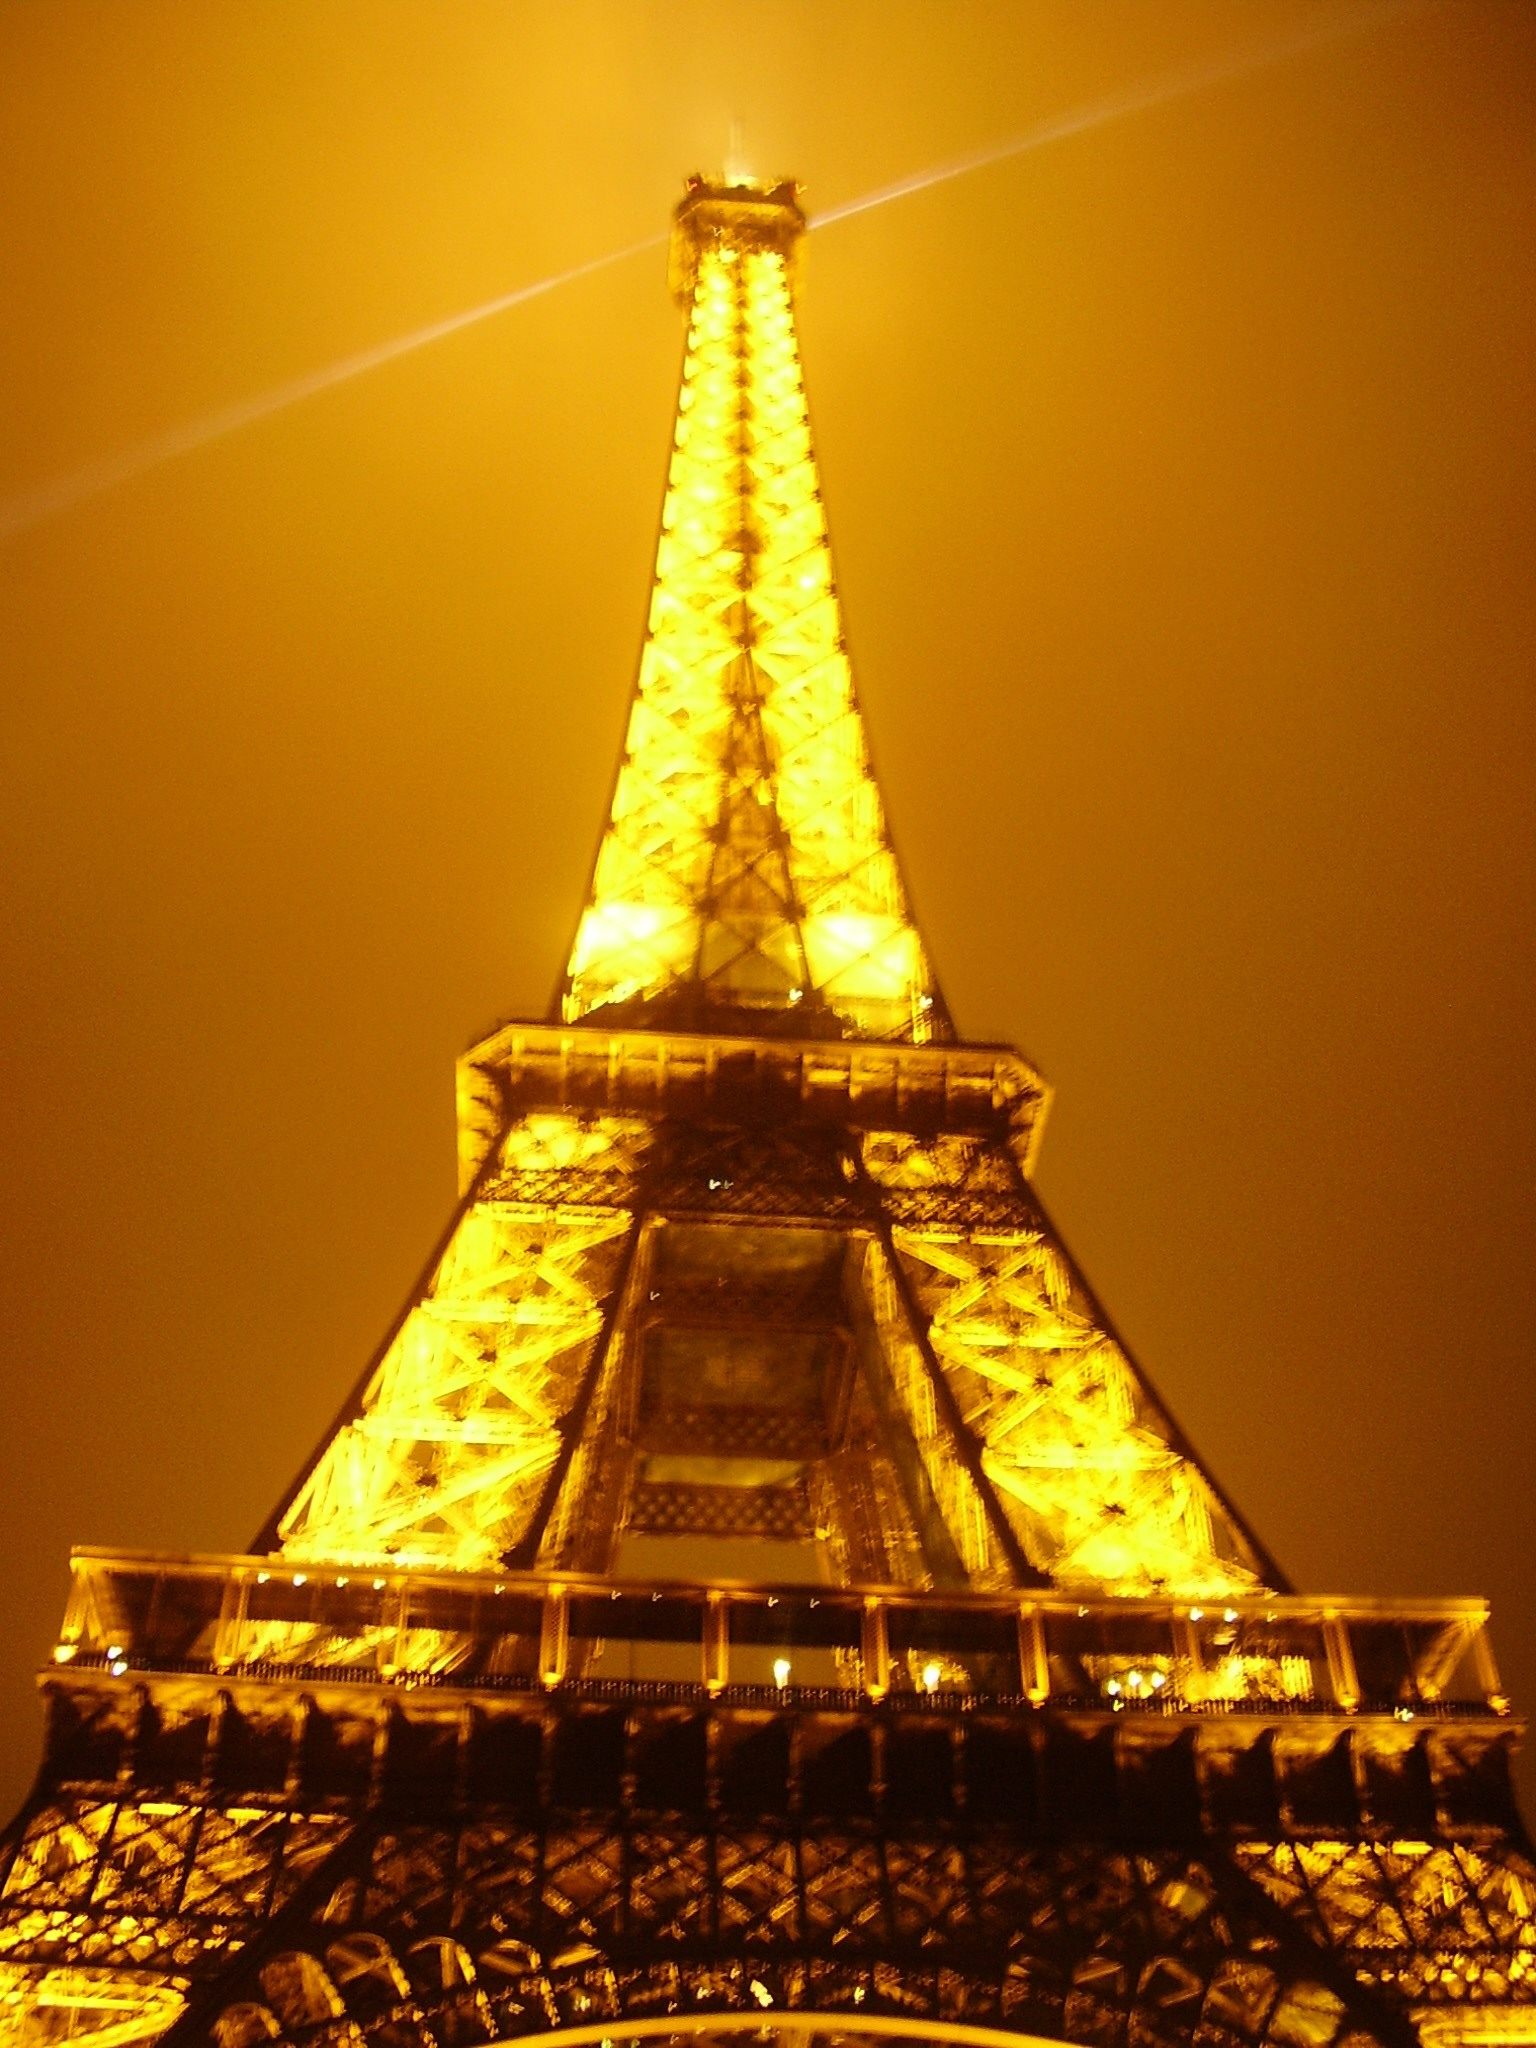 trip to Europe, watch fireworks, personal financial reads, financial blogs to read, financial blogs